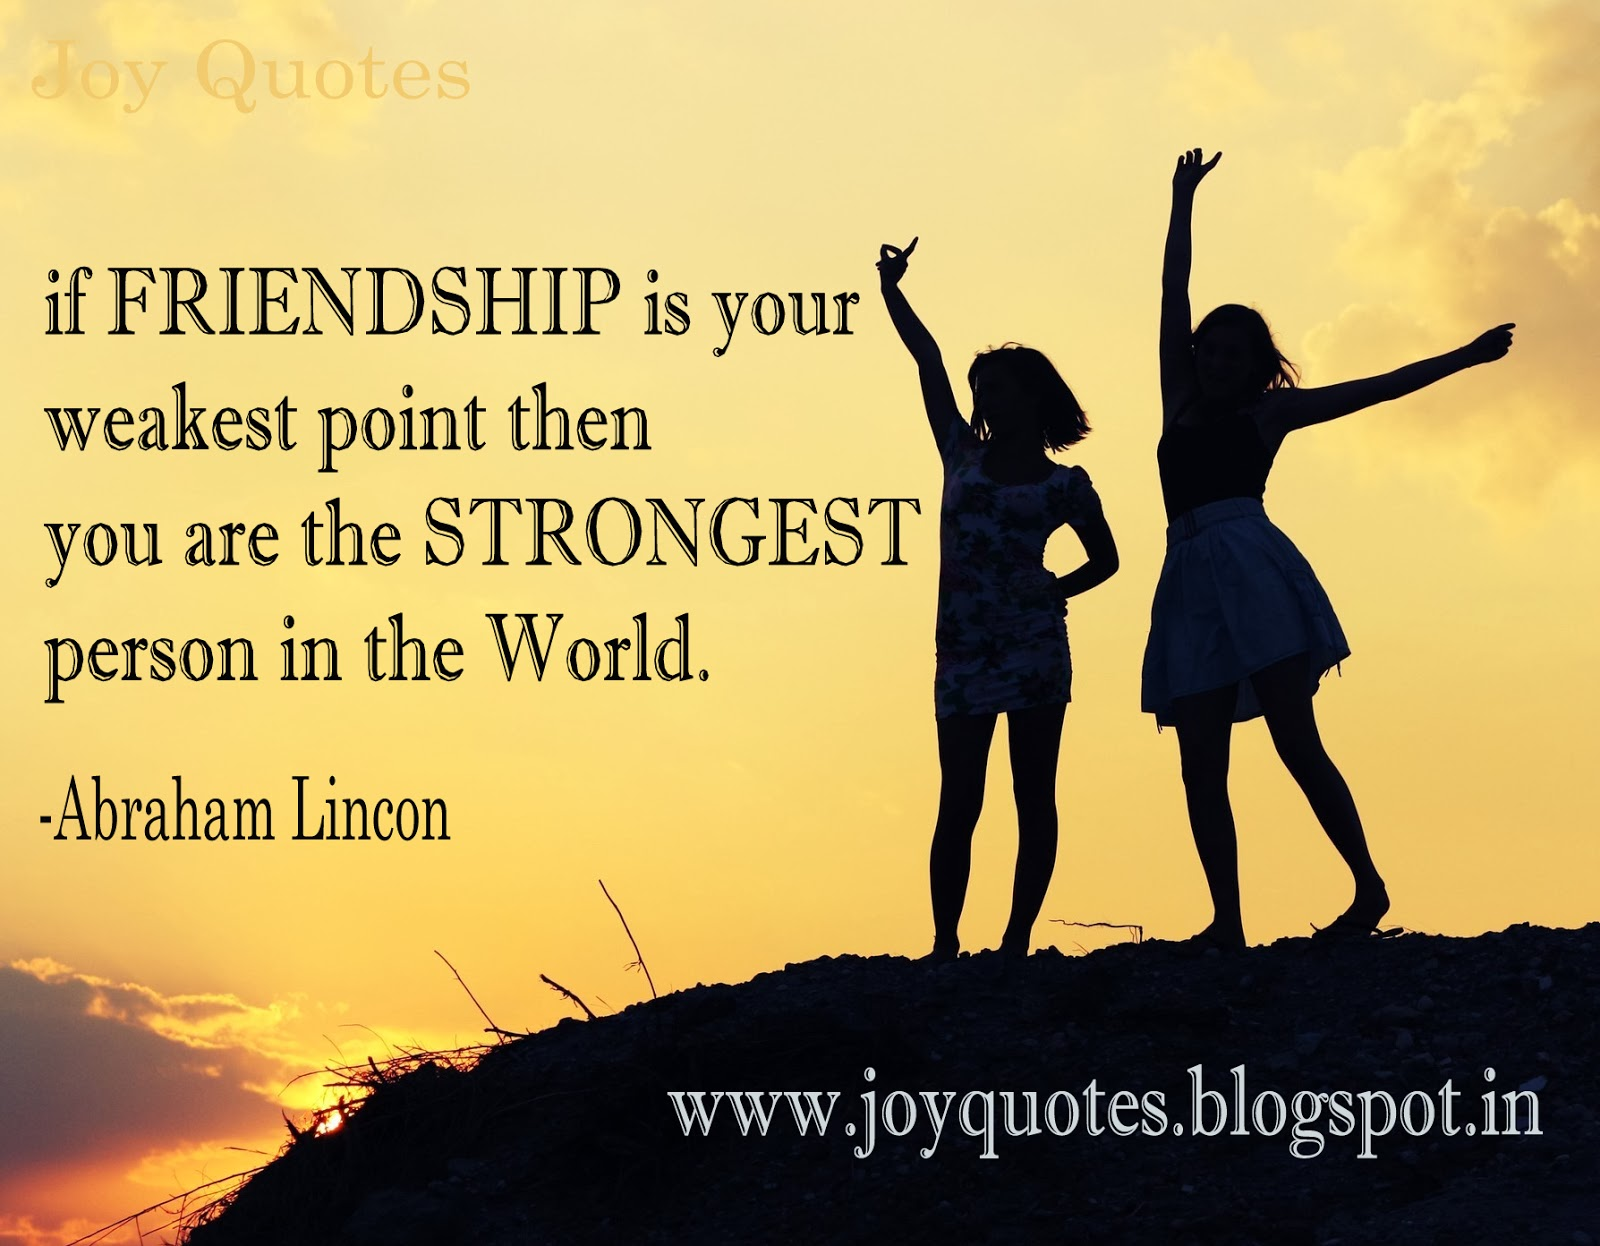 Quotes About Friendship With Images Joy Quotes Friendship Quotes